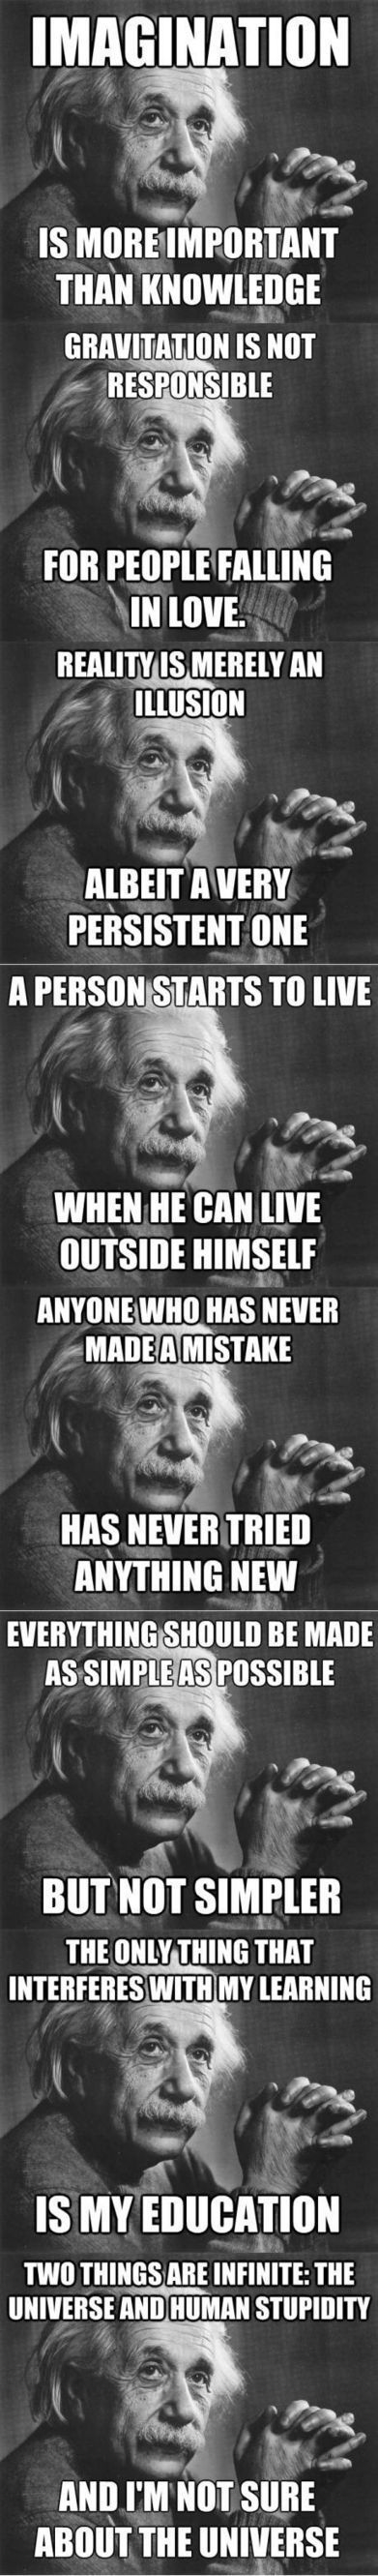 Einstein. | Cool Links | Scoop.it